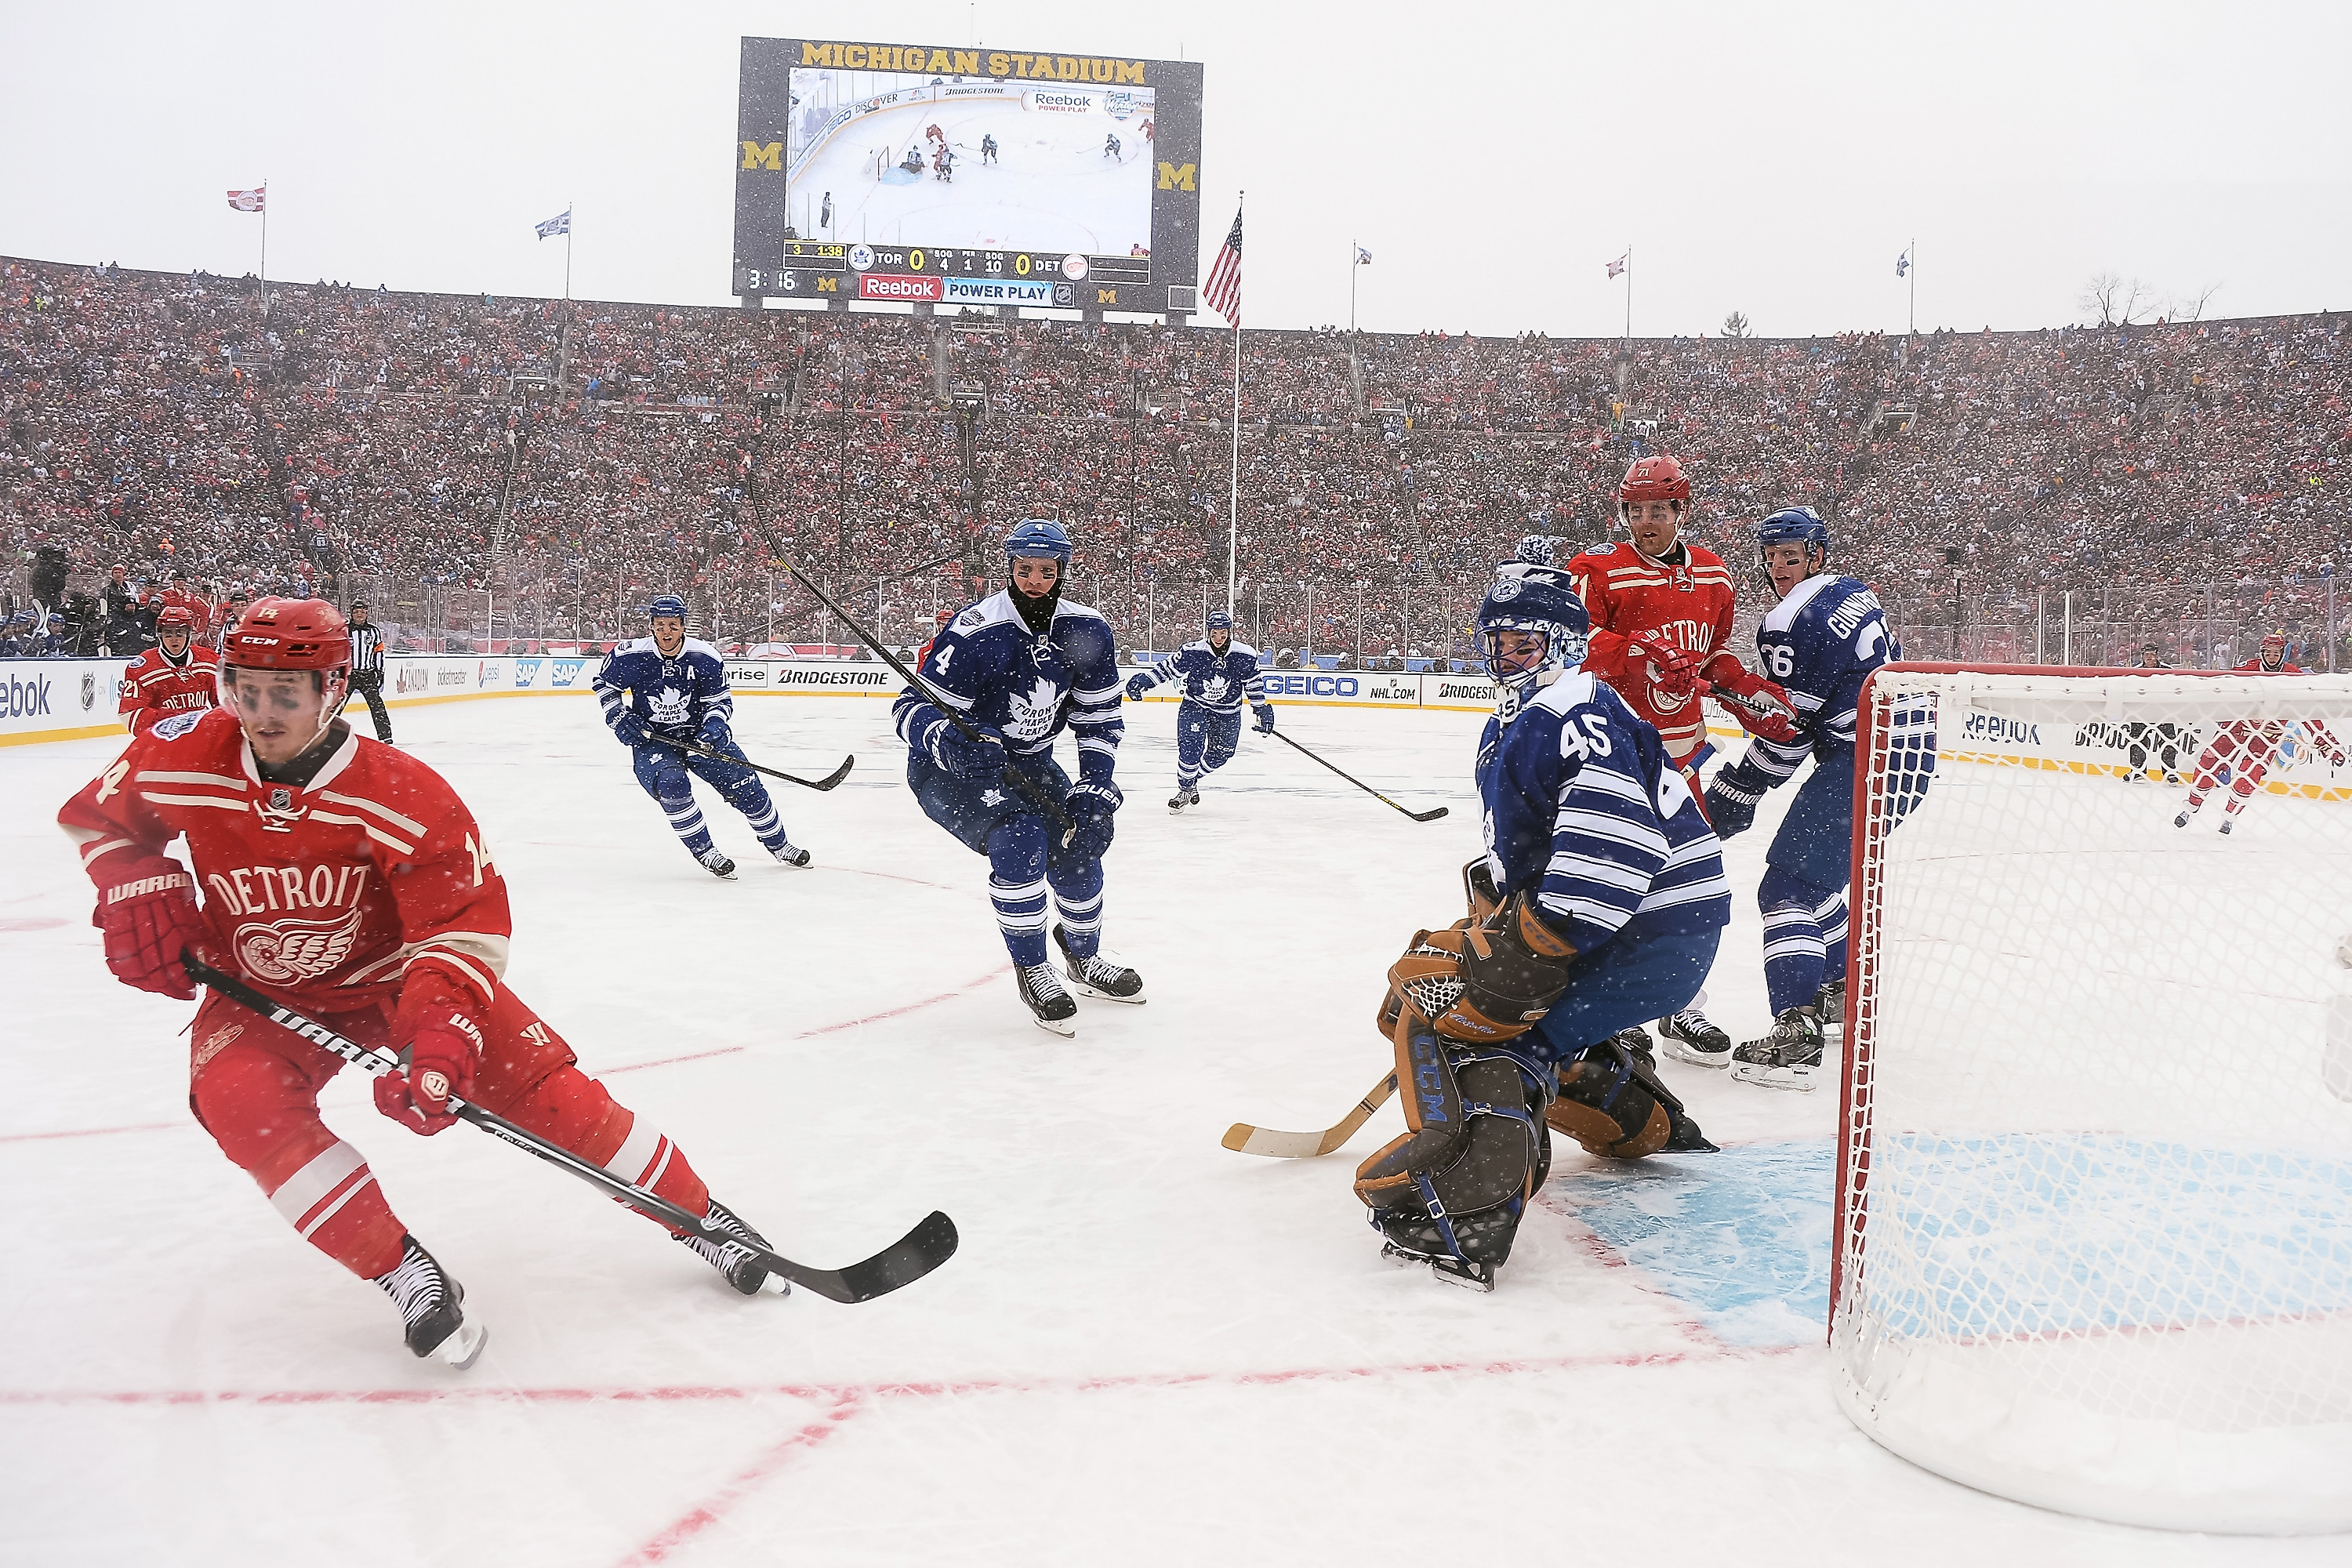 NHL unveils slate of 2016-17 outdoor games | NHL.com